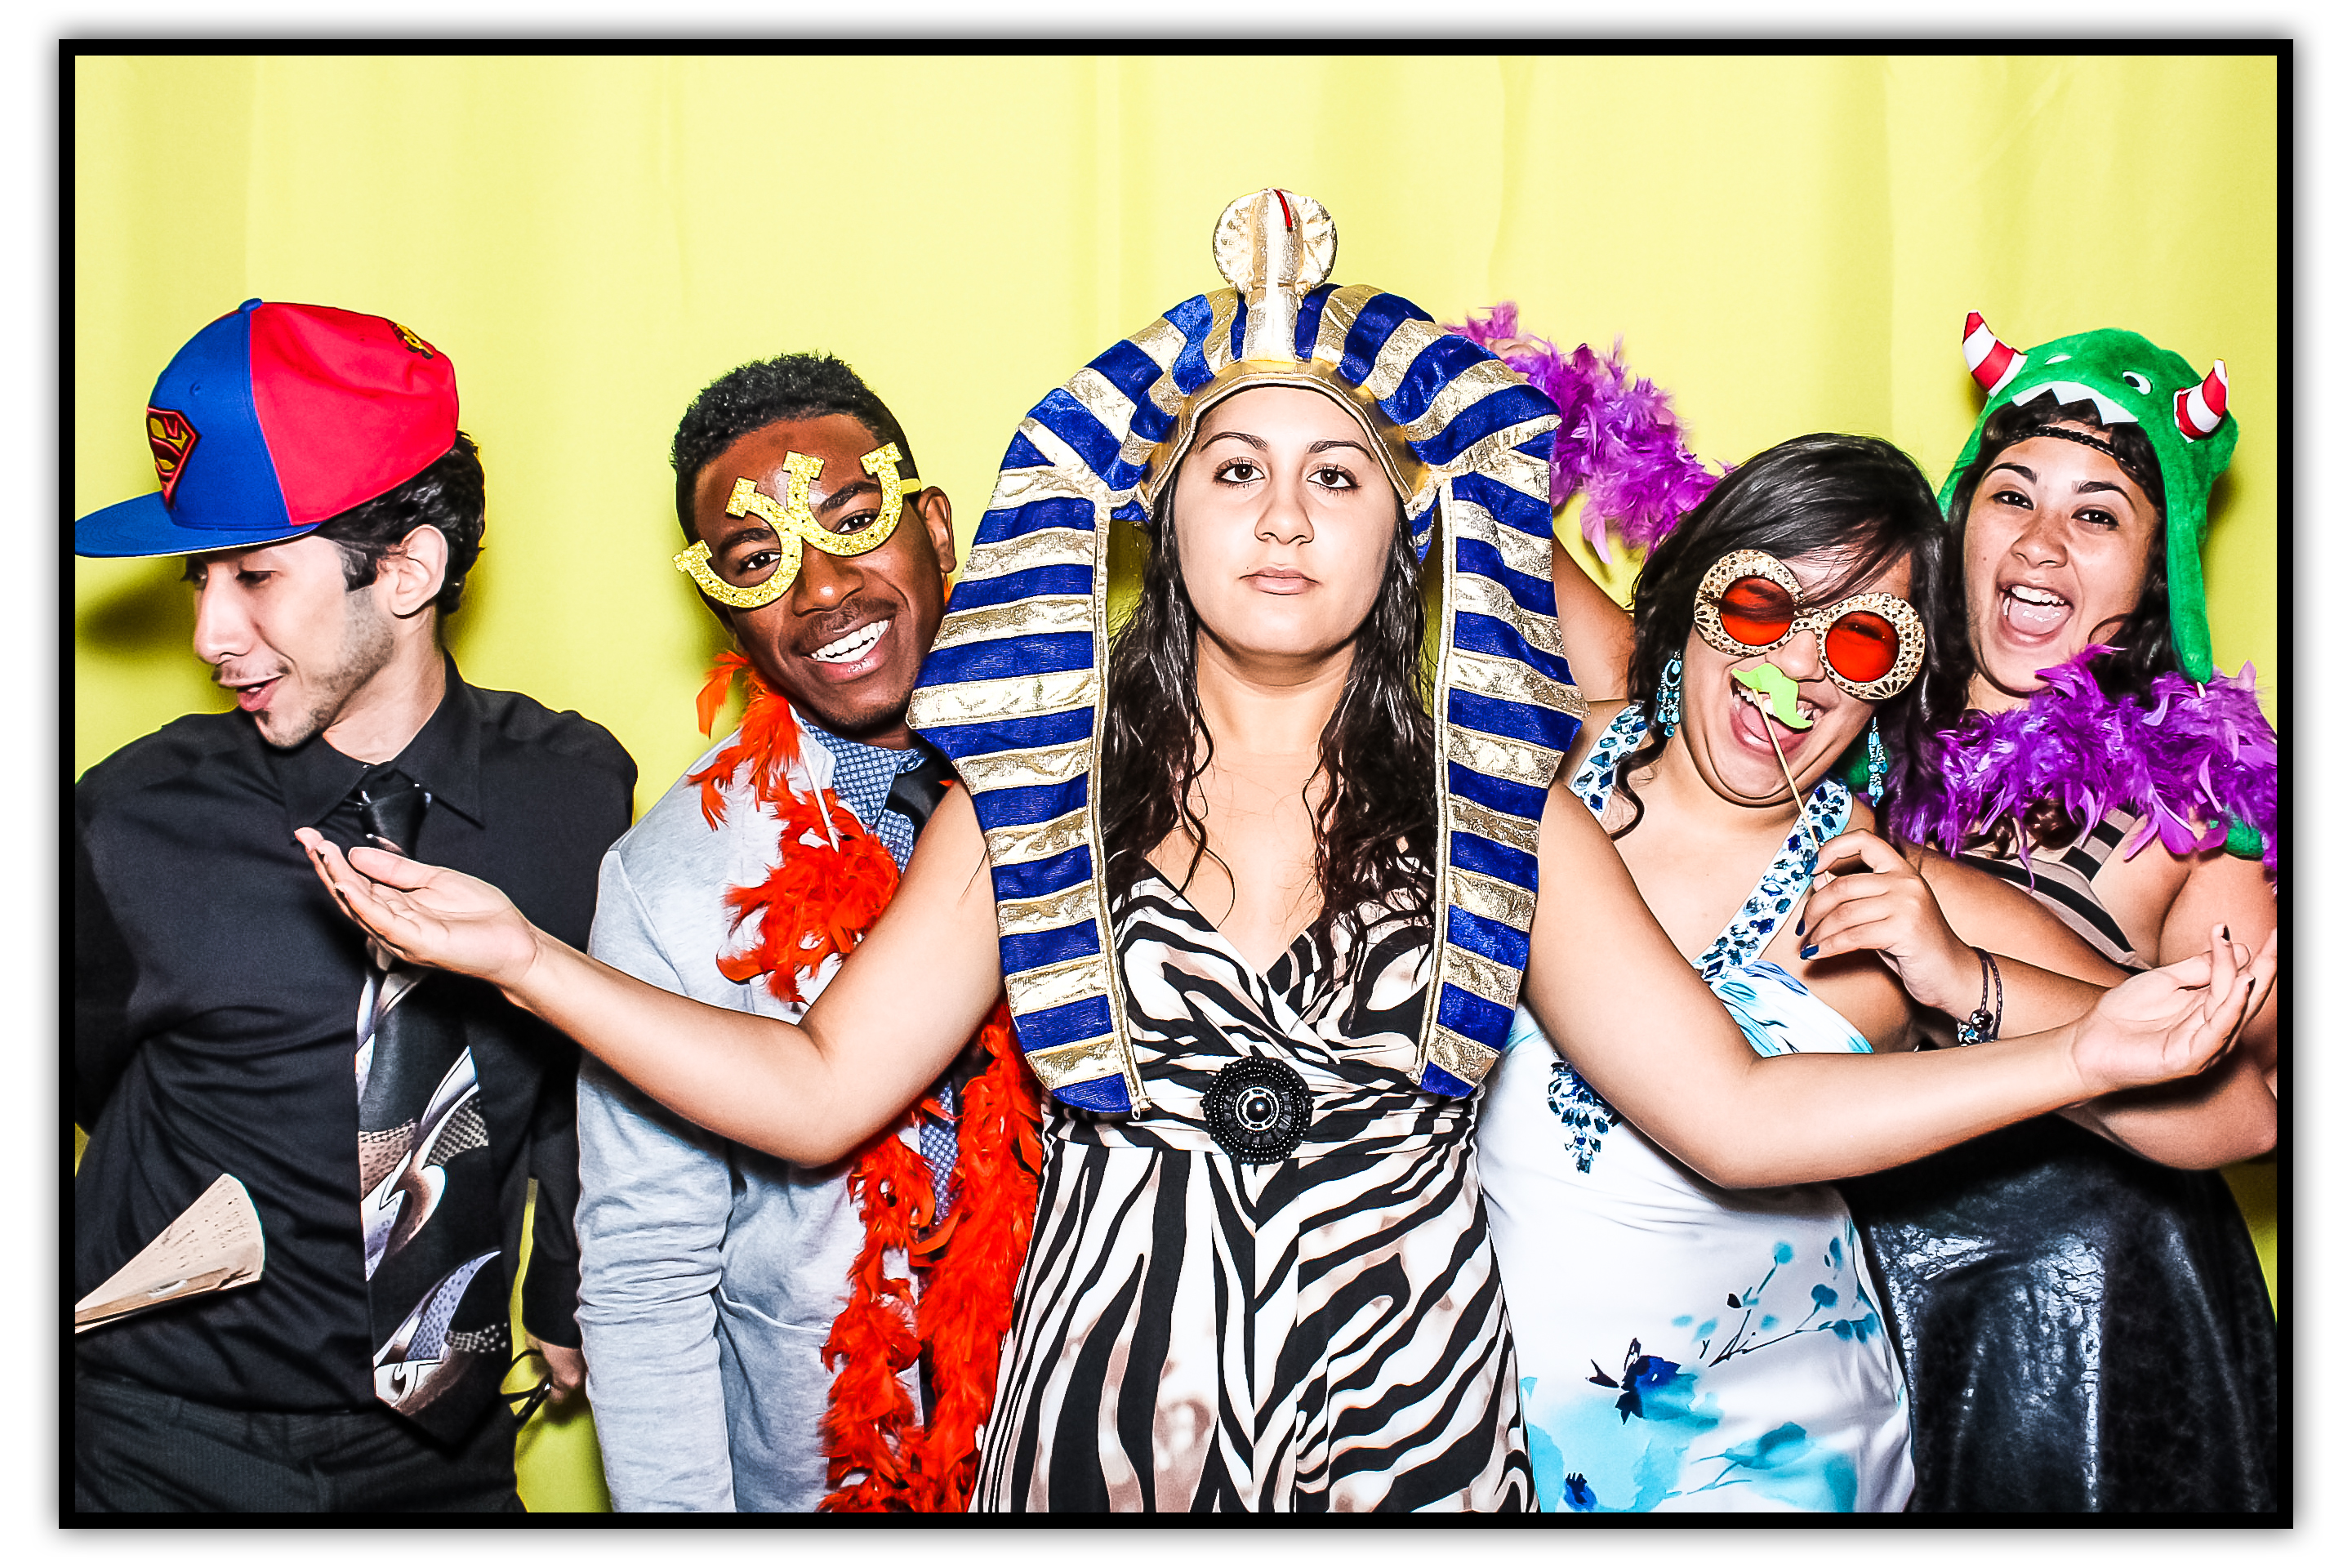 https://photoboothparty.net/wp-content/uploads/2013/08/cover2.png